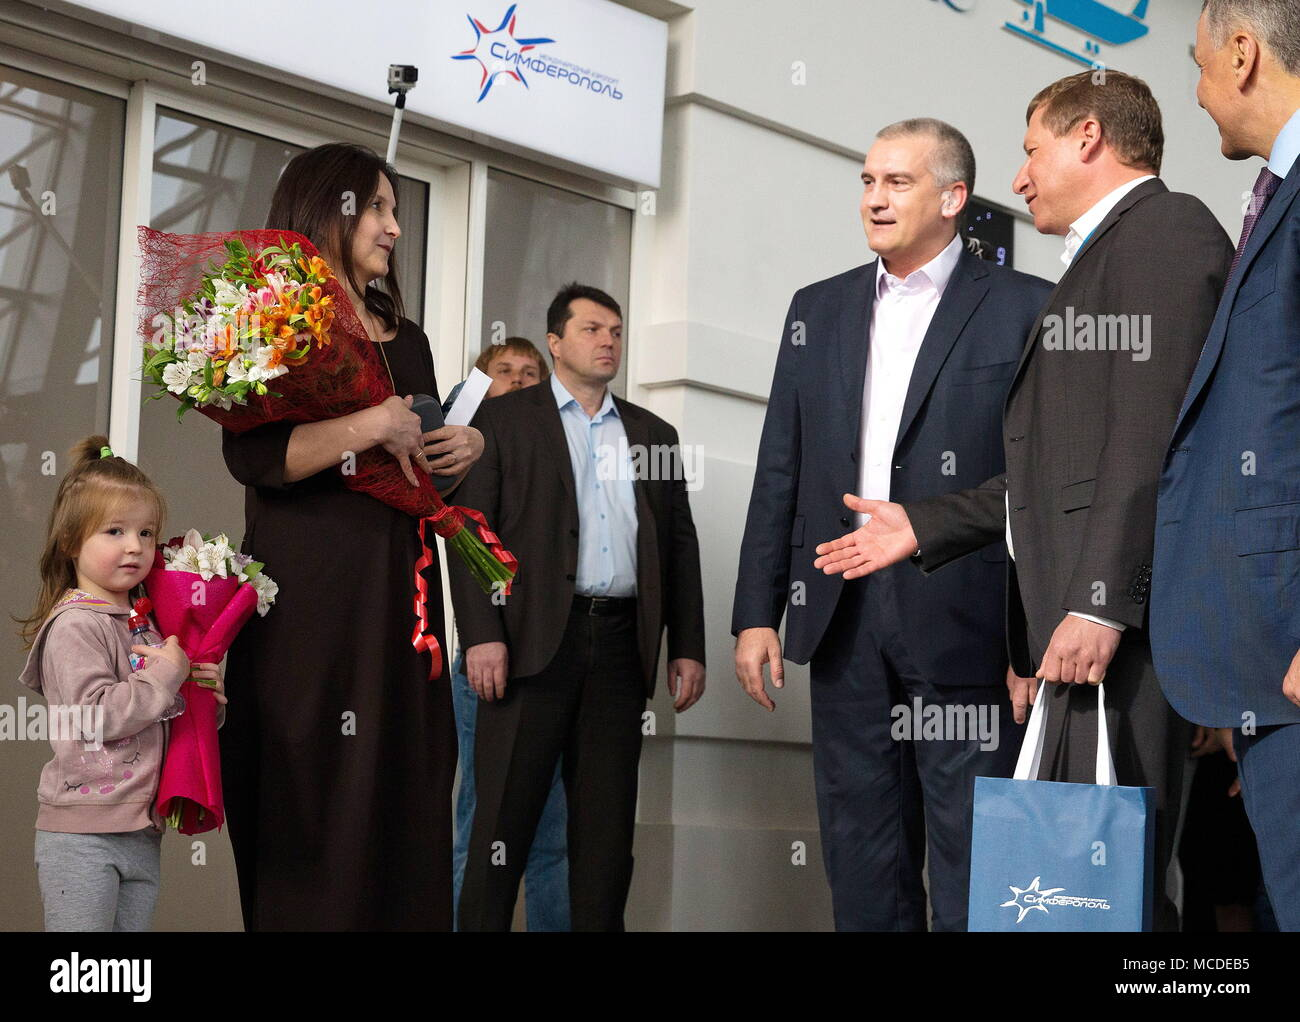 SIMFEROPOL, RUSSIA - APRIL 16, 2018: The Head of Russia's Republic of Crimea, Sergei Aksyonov (3rd R), the General Director of the Simferopol International Airport, Yevgeny Plaksin (2nd R), and the Chairman of the State Council of the Republic of Crimea, Vladimir Konstantinov (R), welcome Svetlana Kovrizhina with daughter Agata from Ufa (L), the first travellers to arrive at the new passenger terminal building at the Simferopol Airport in Simferopol, Crimea, Russia. Sergei Malgavko/TASS - Stock Image